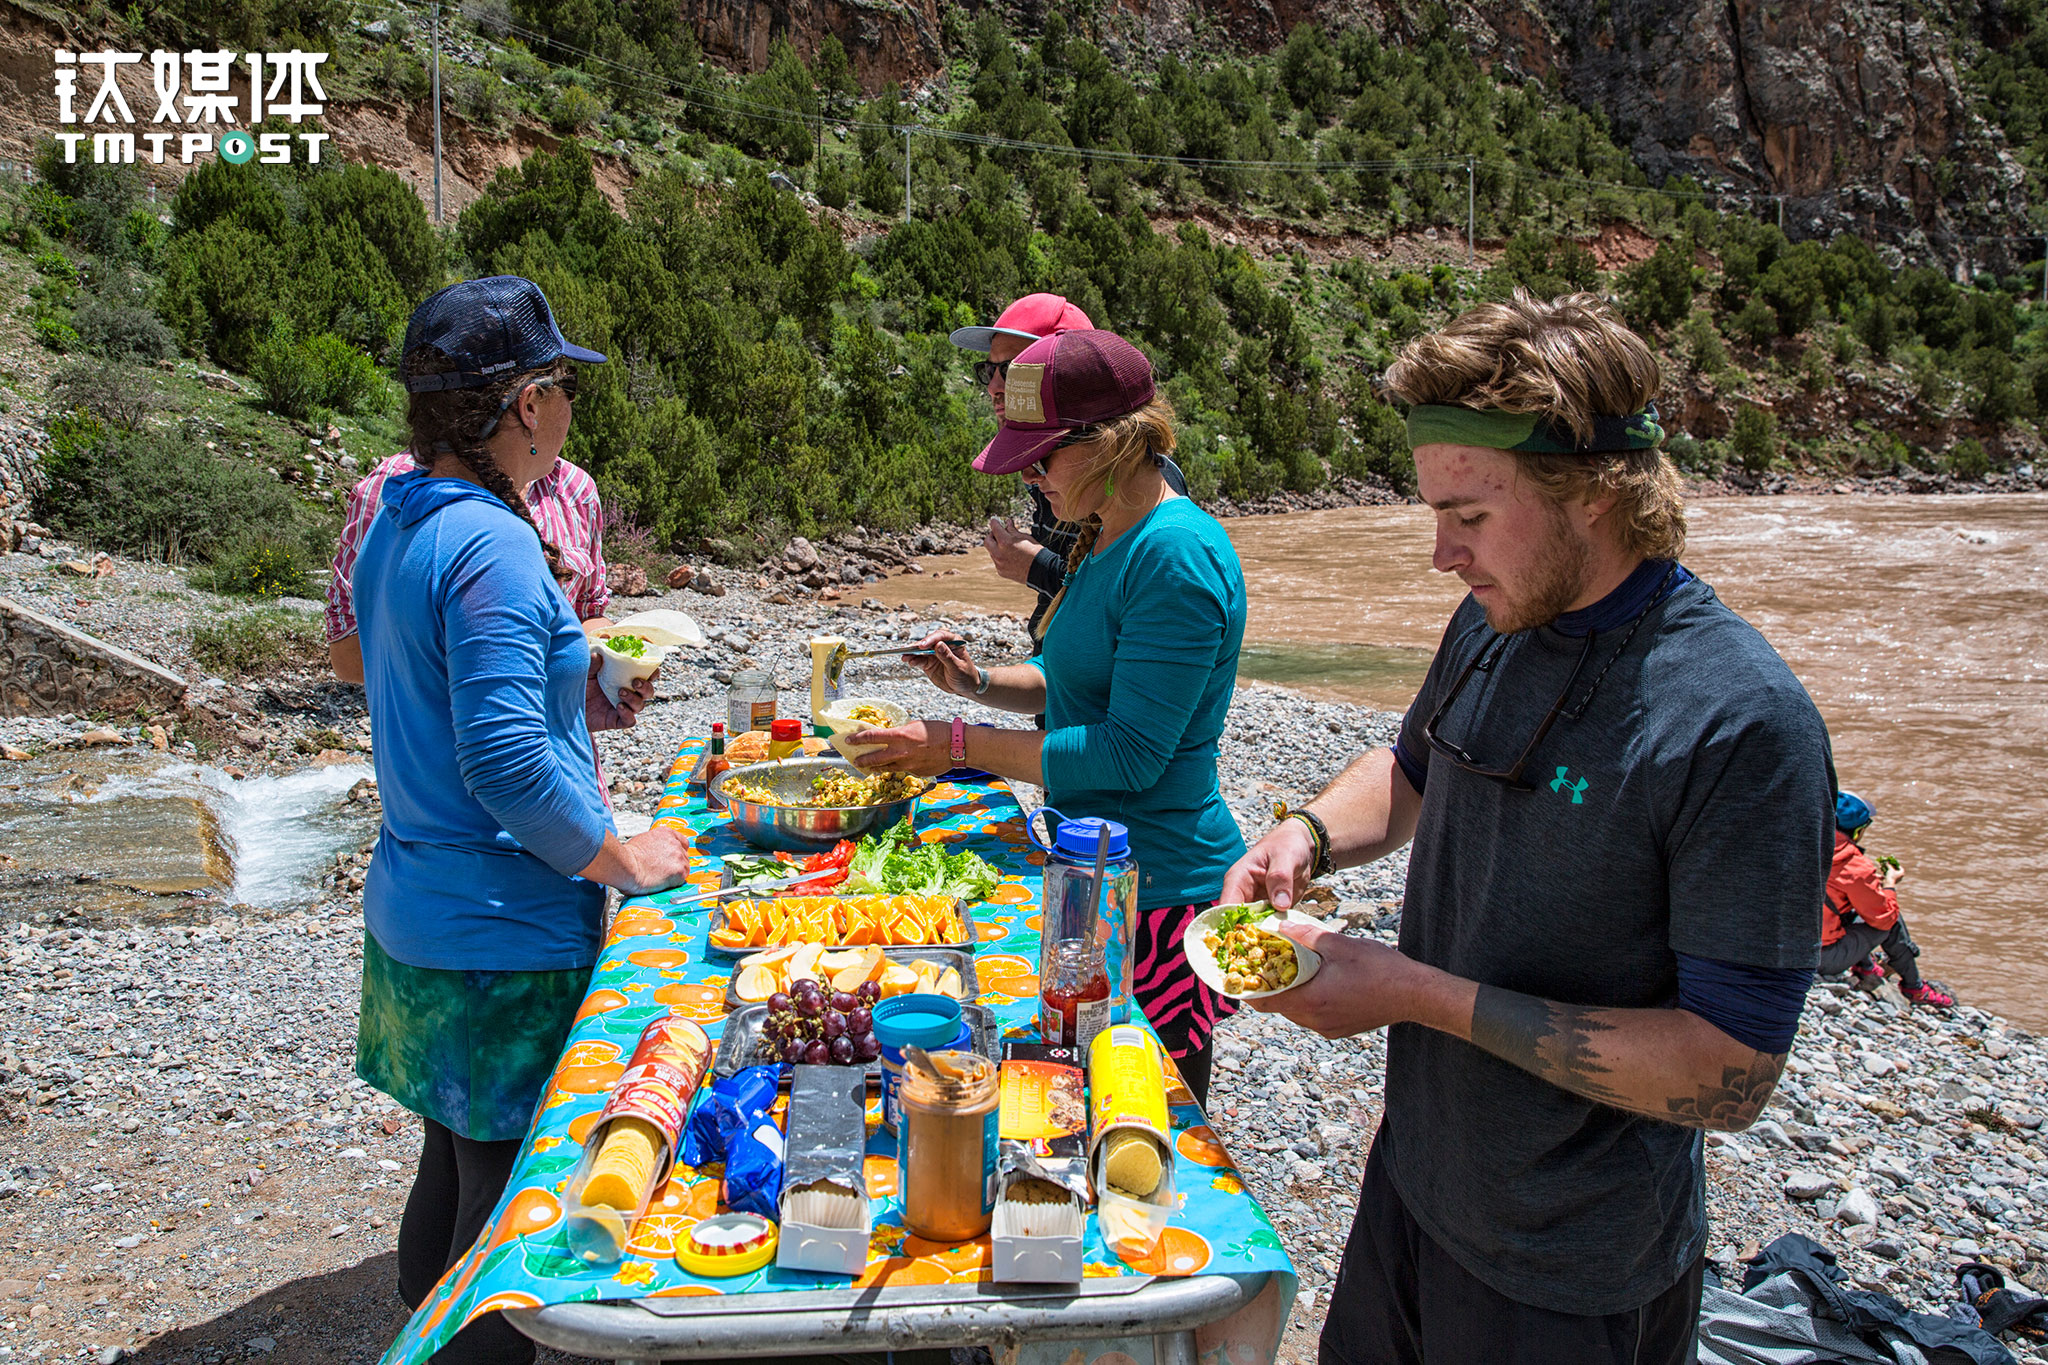 Cold western dishes were provided for lunch. When preparing and eating the meal, only some organic wastes would be disposed in the river. Other solid wastes would be carried along by the team and would be disposed on shore after the rafting journey ends.